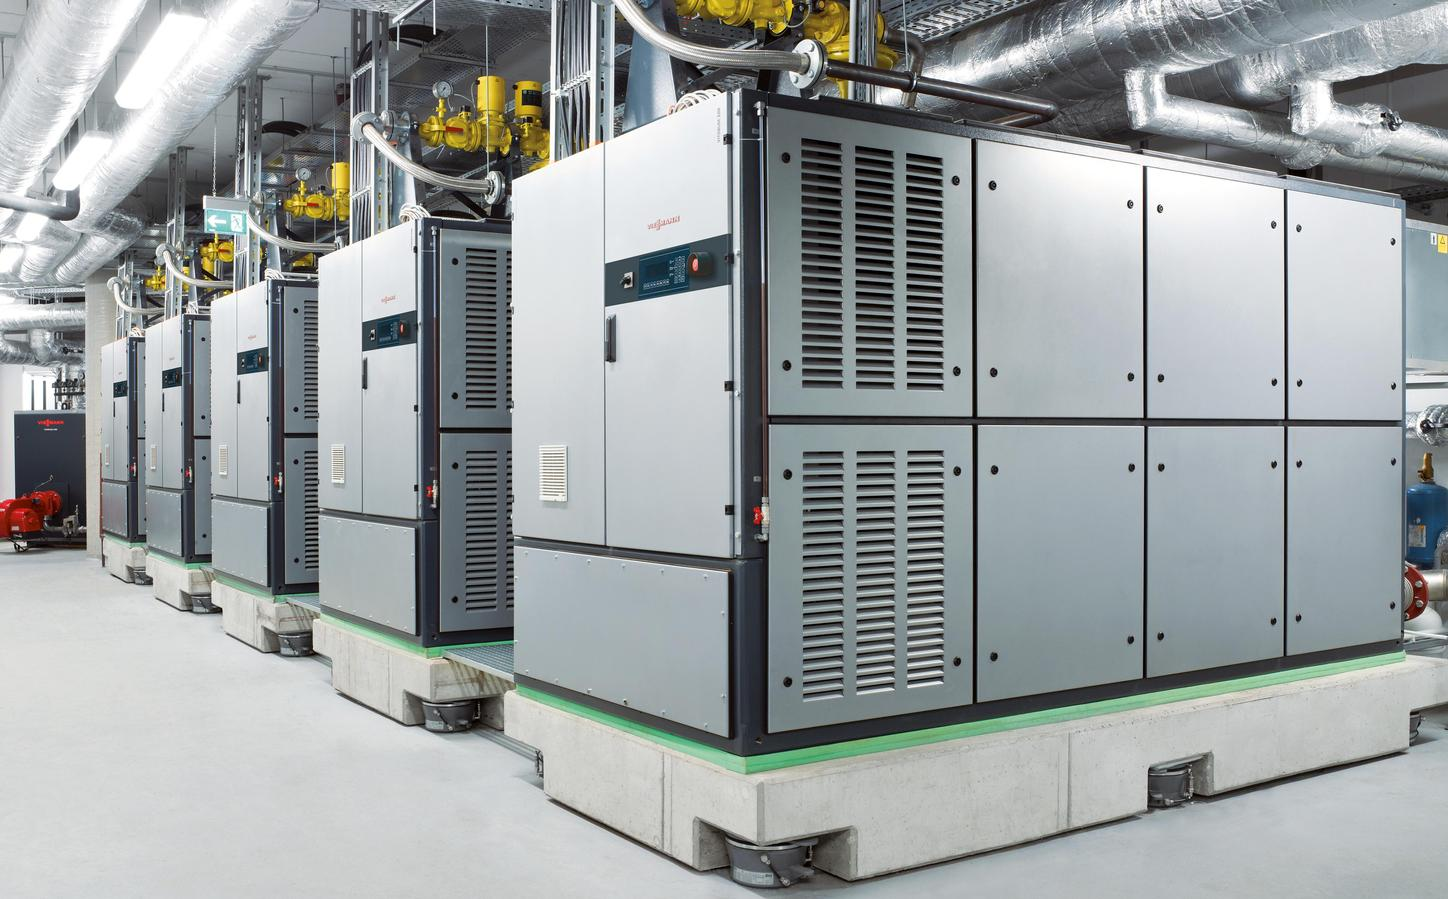 The picture shows combined heat and power units from Viessmann.